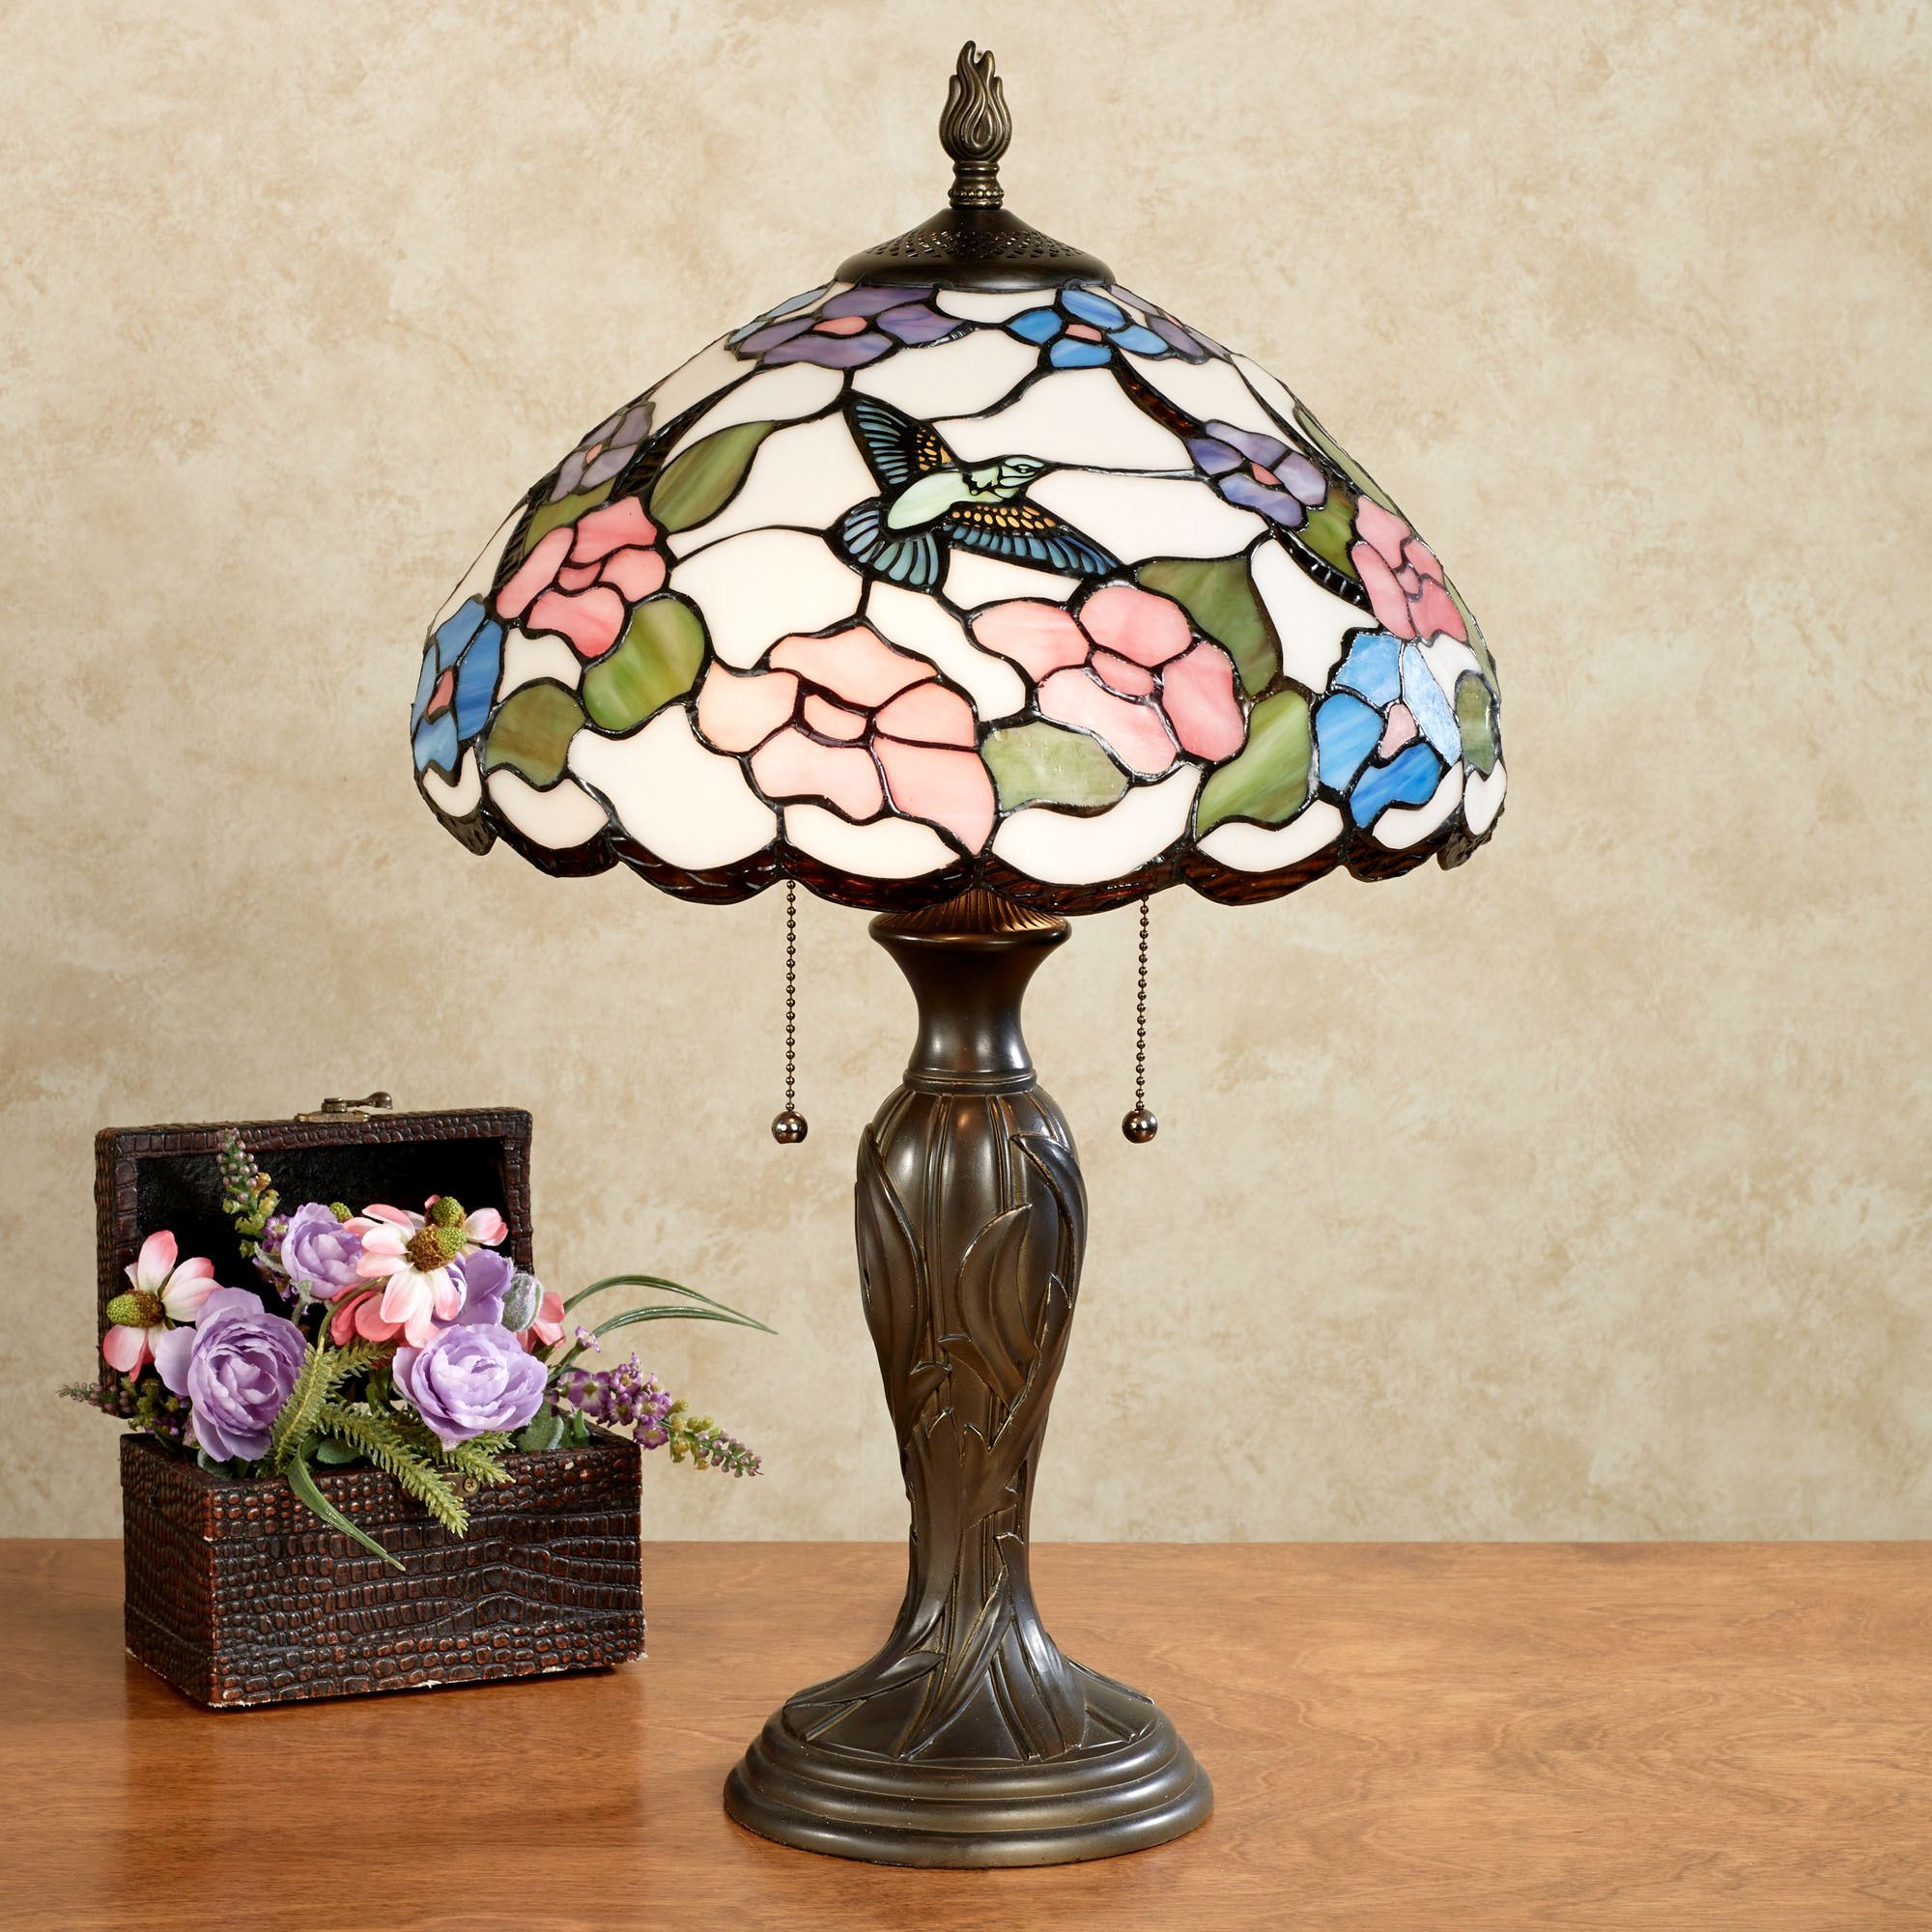 lamp table lamps teal torchiere lighttable furniture stained clear glass green quoizel metal country pink oriental decorative battery lighting chrome